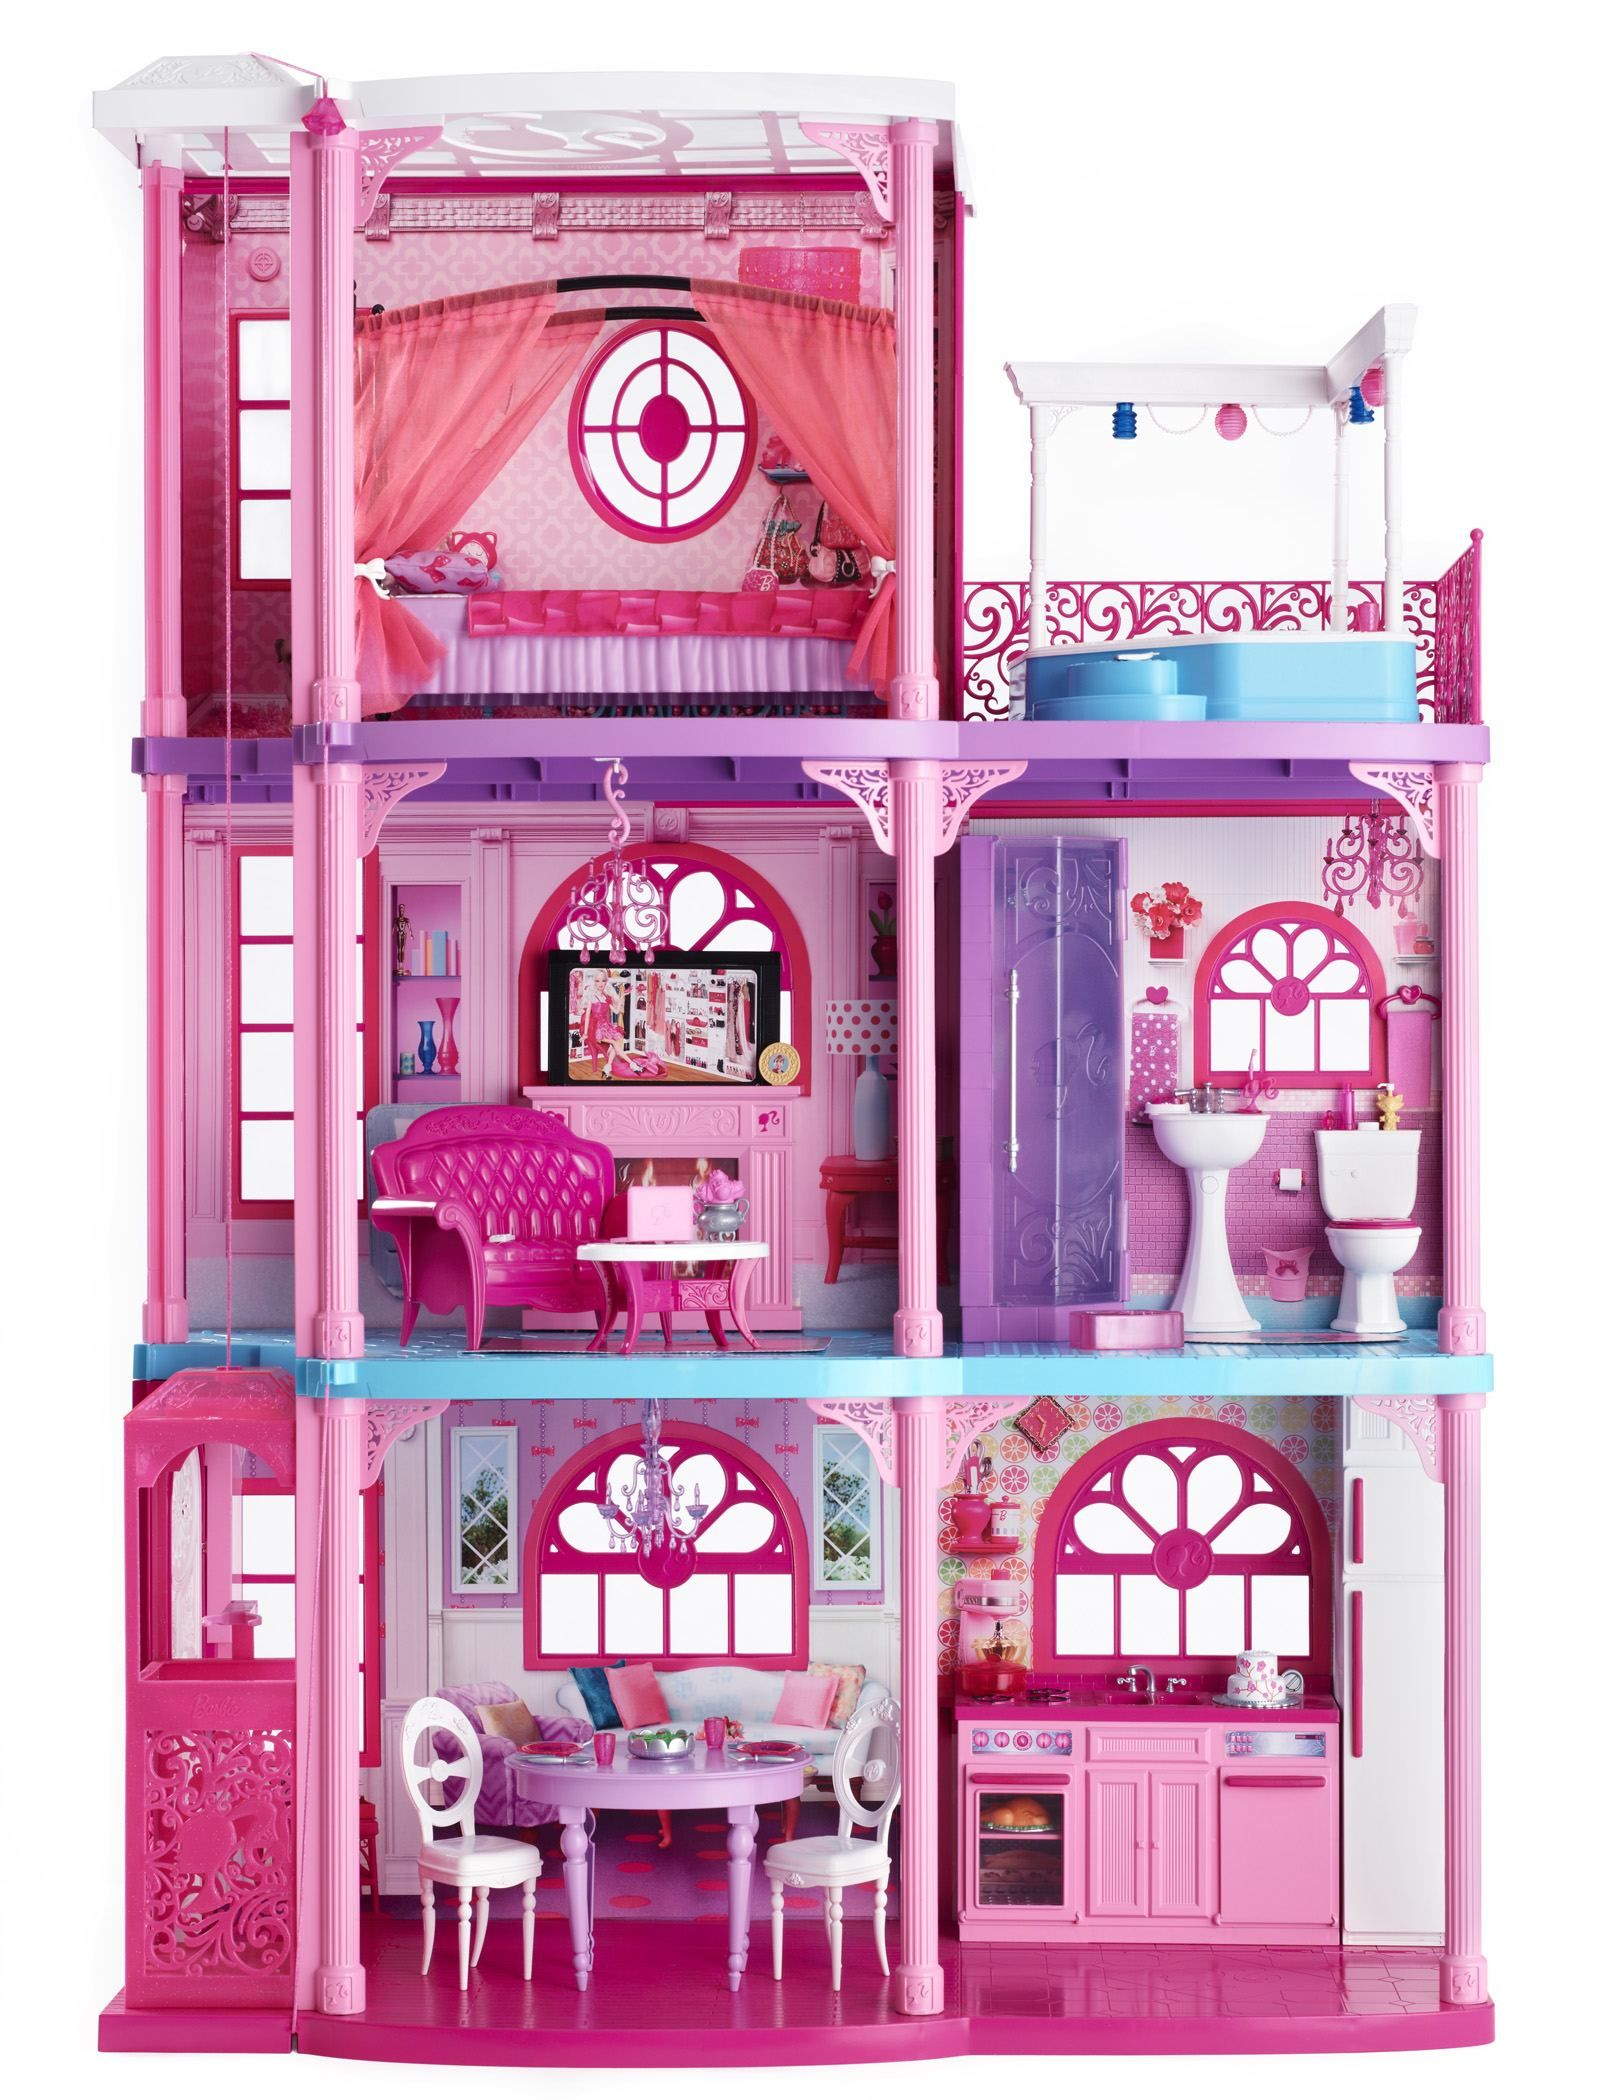 Barbie Dreamhouse A Visual History Of This Iconic Home Barbie Doll House Barbie Dream House Barbie Dream